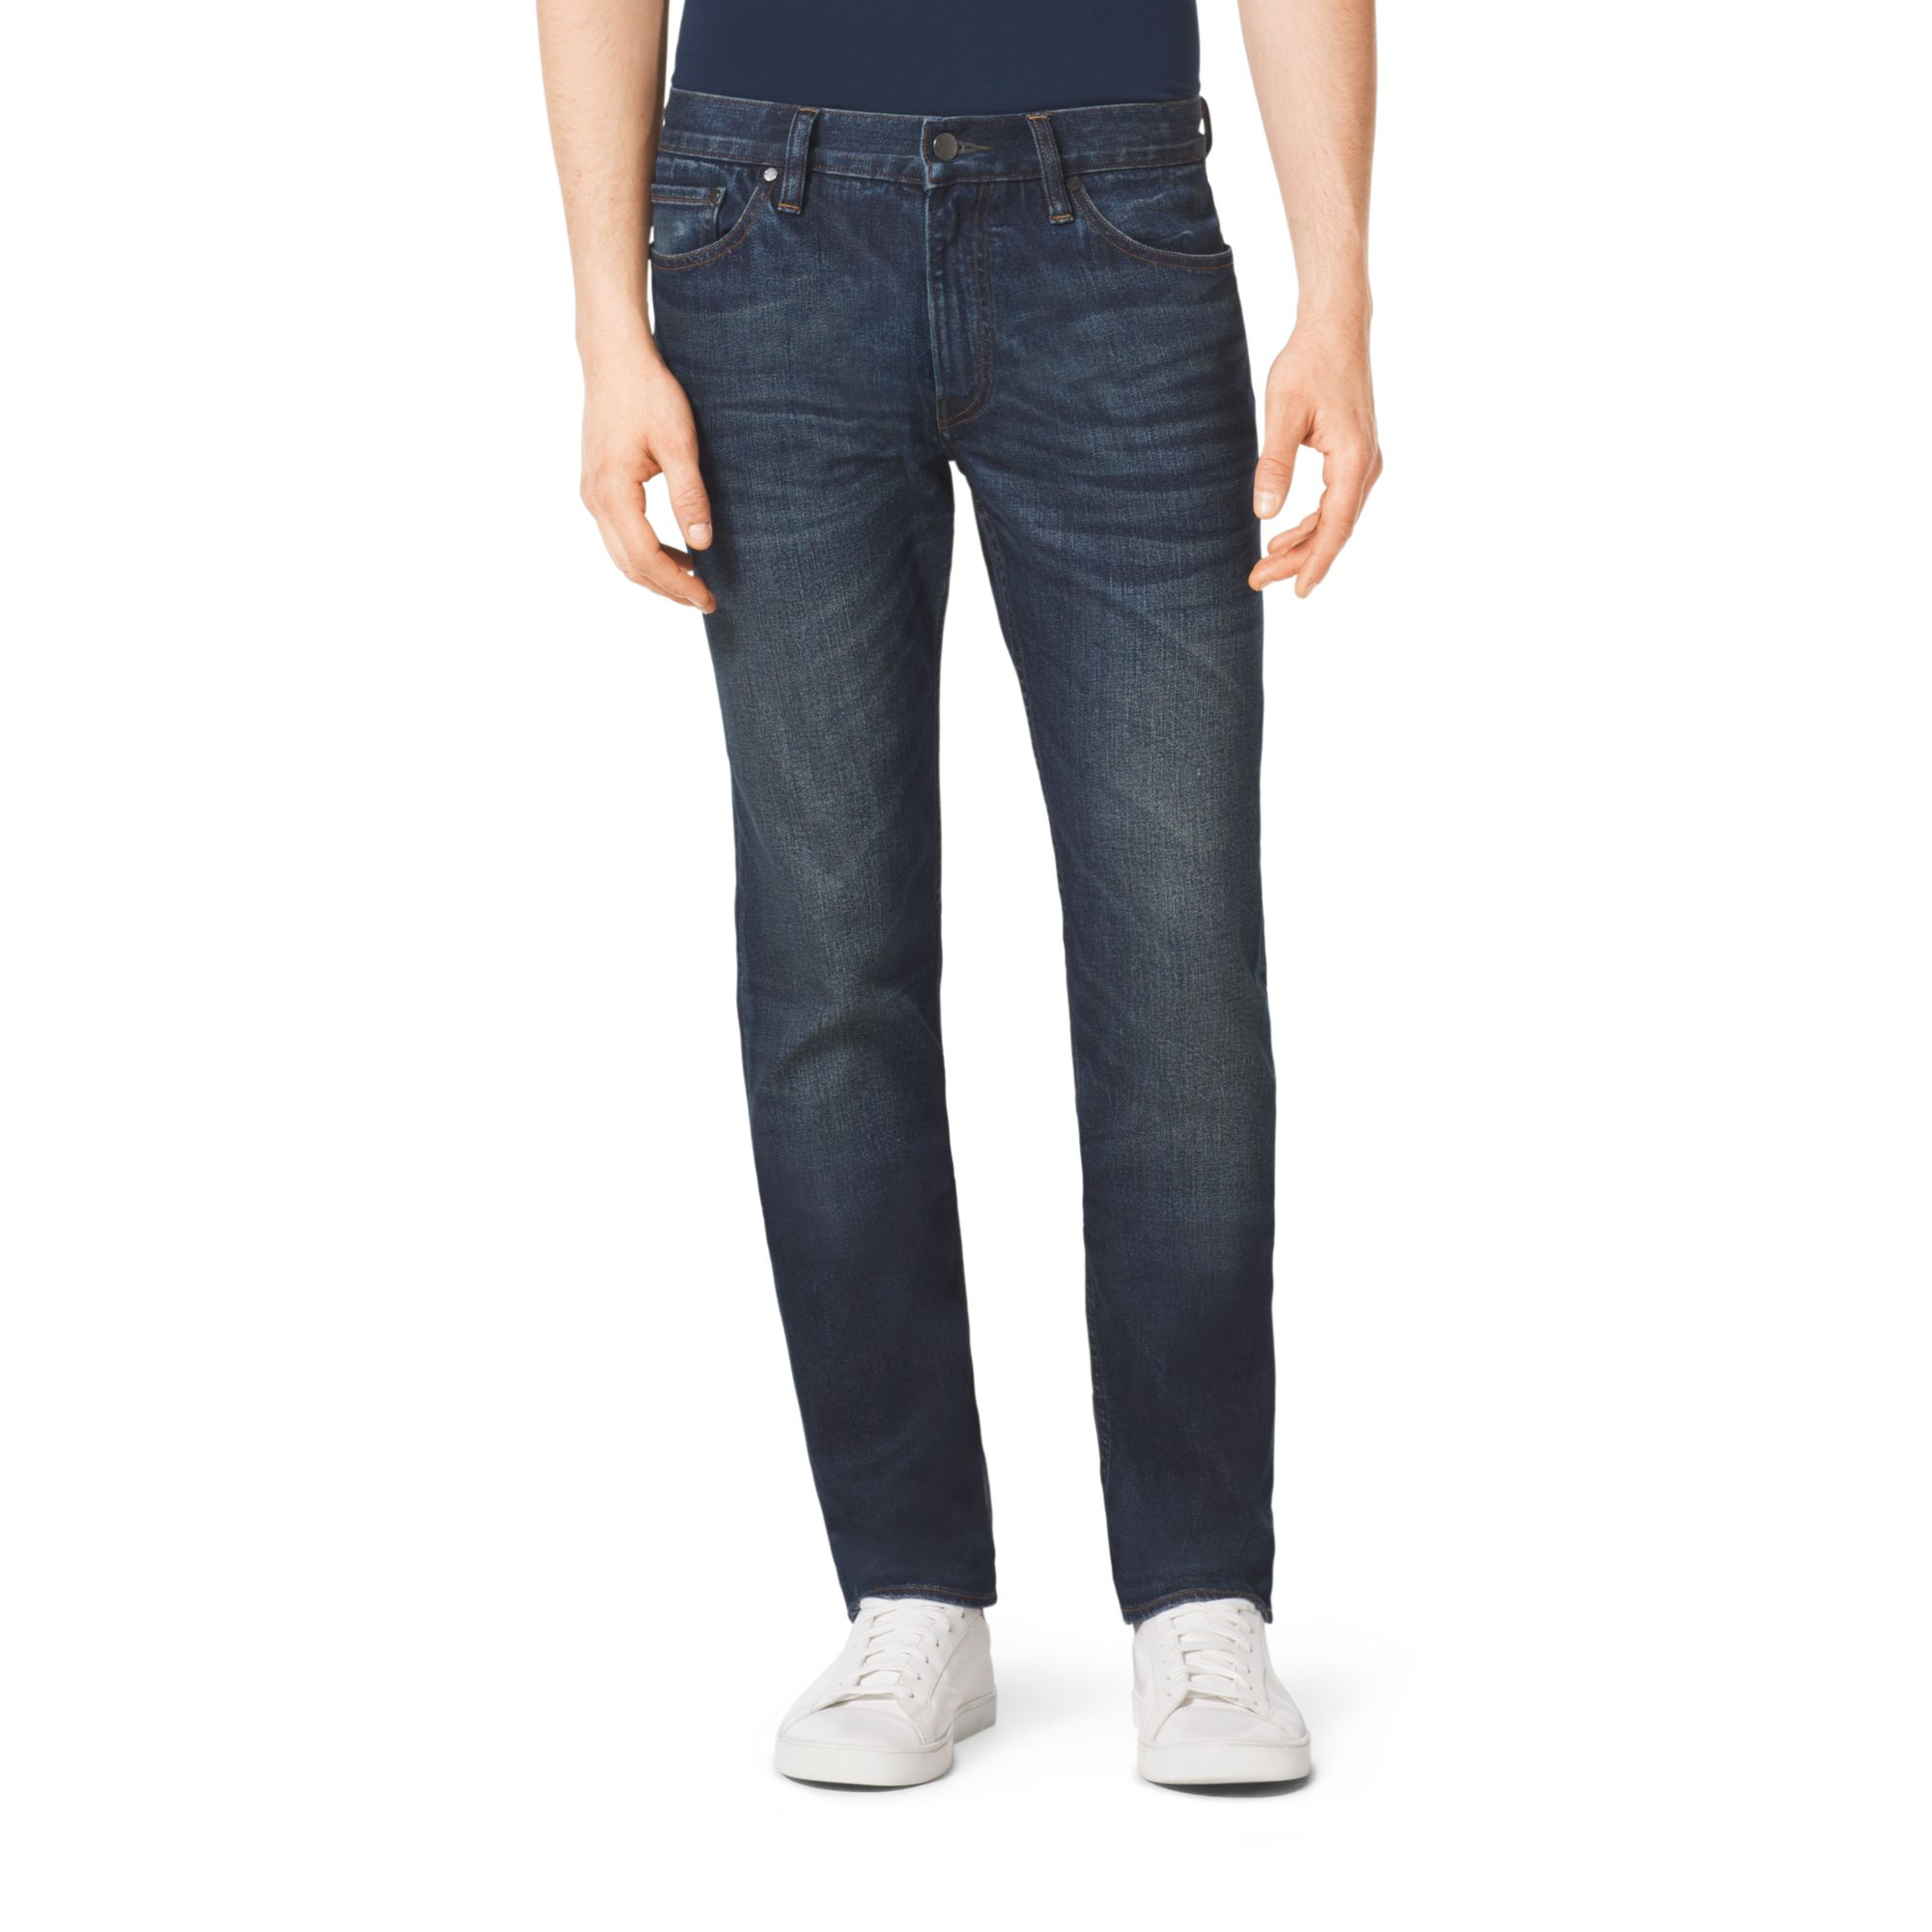 lyst michael kors tailored fit jeans in blue for men. Black Bedroom Furniture Sets. Home Design Ideas